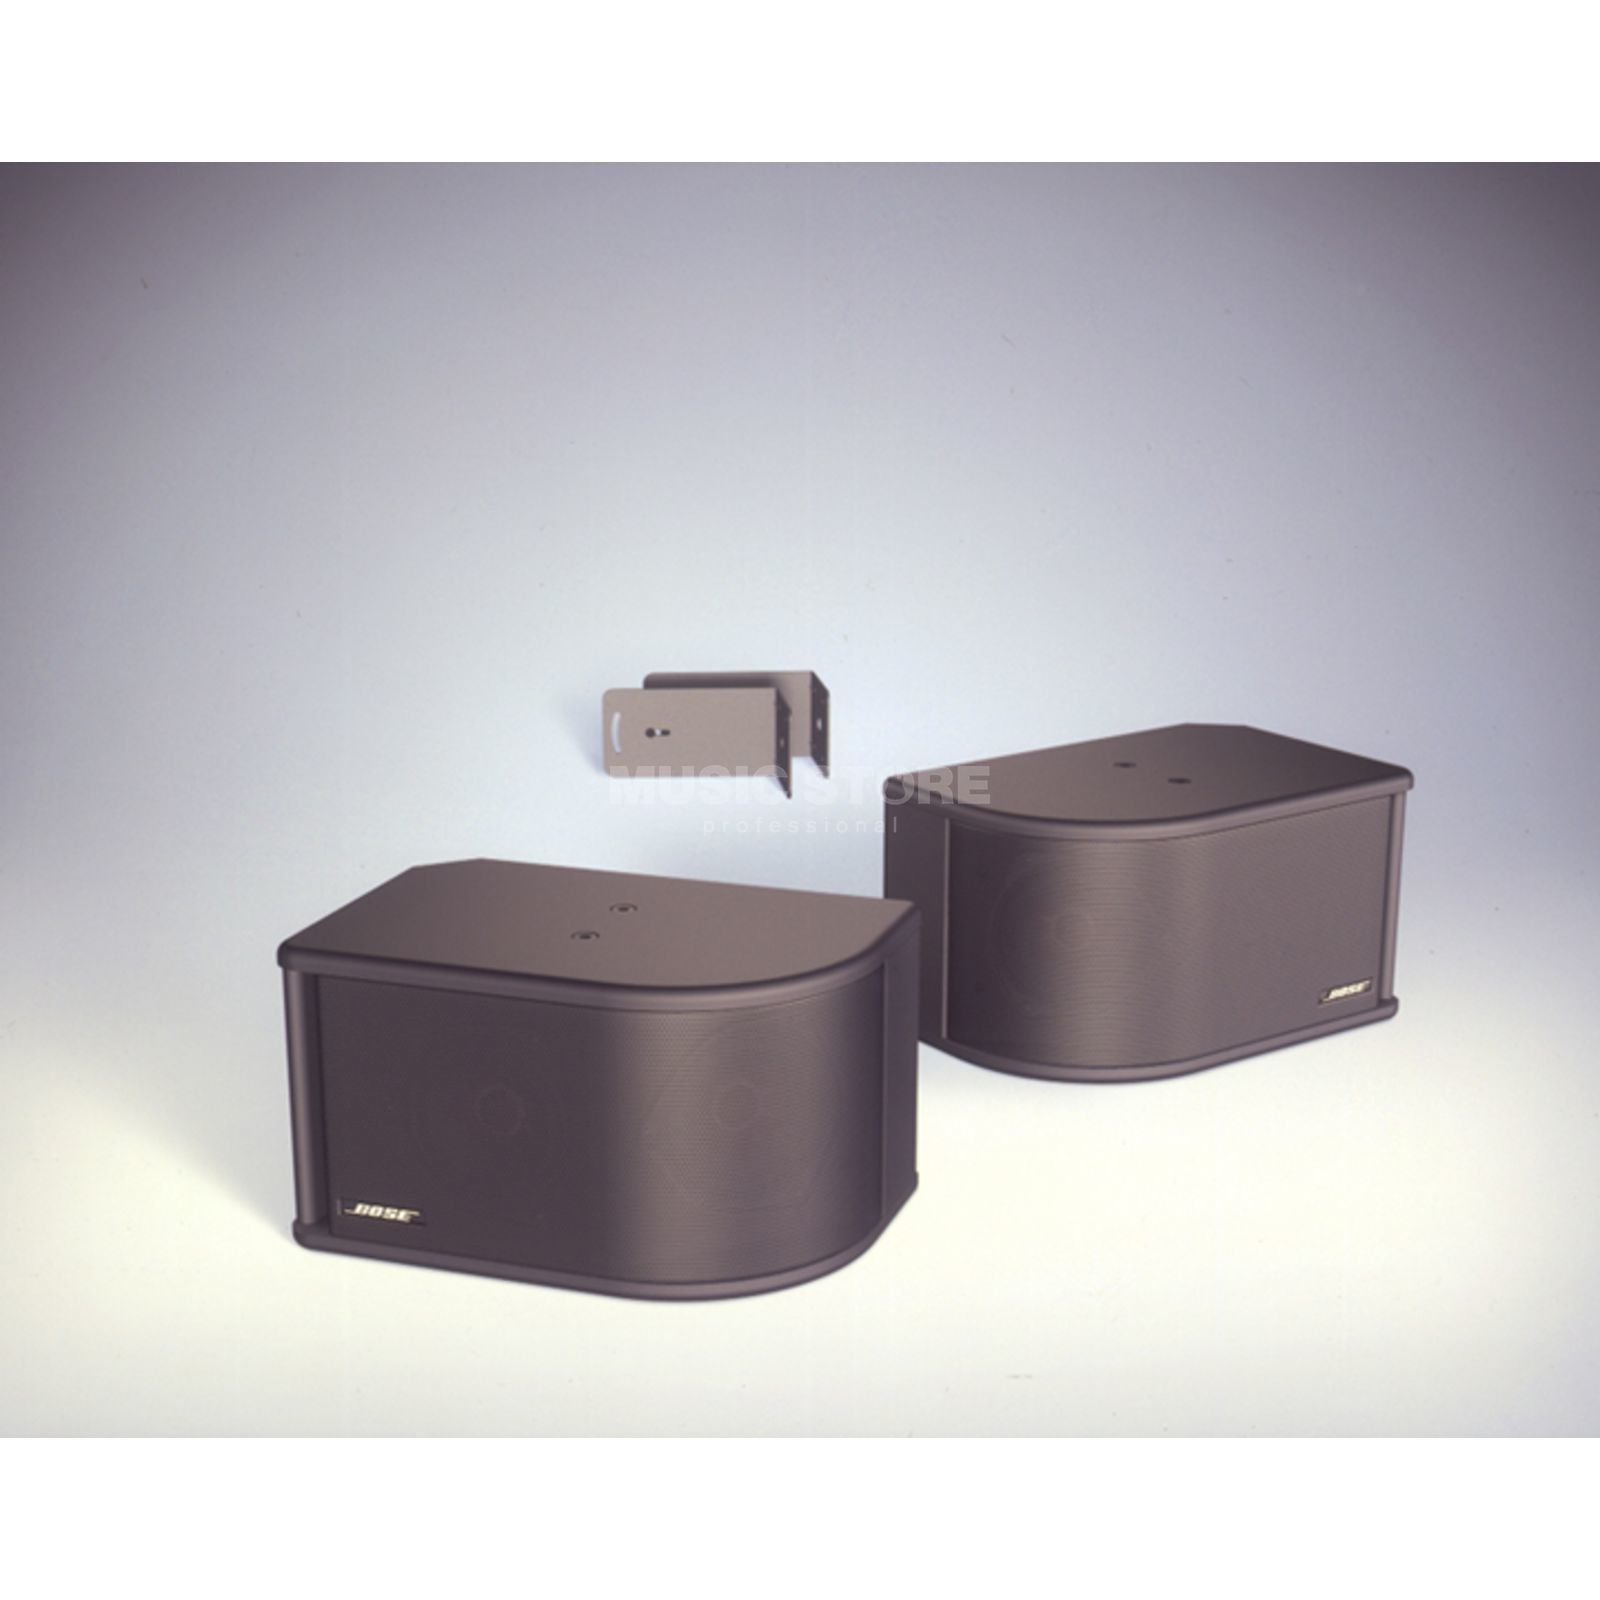 Bose FreeSpace 203 BK Full Range 2 Way Speaker 4,5 Produktbild